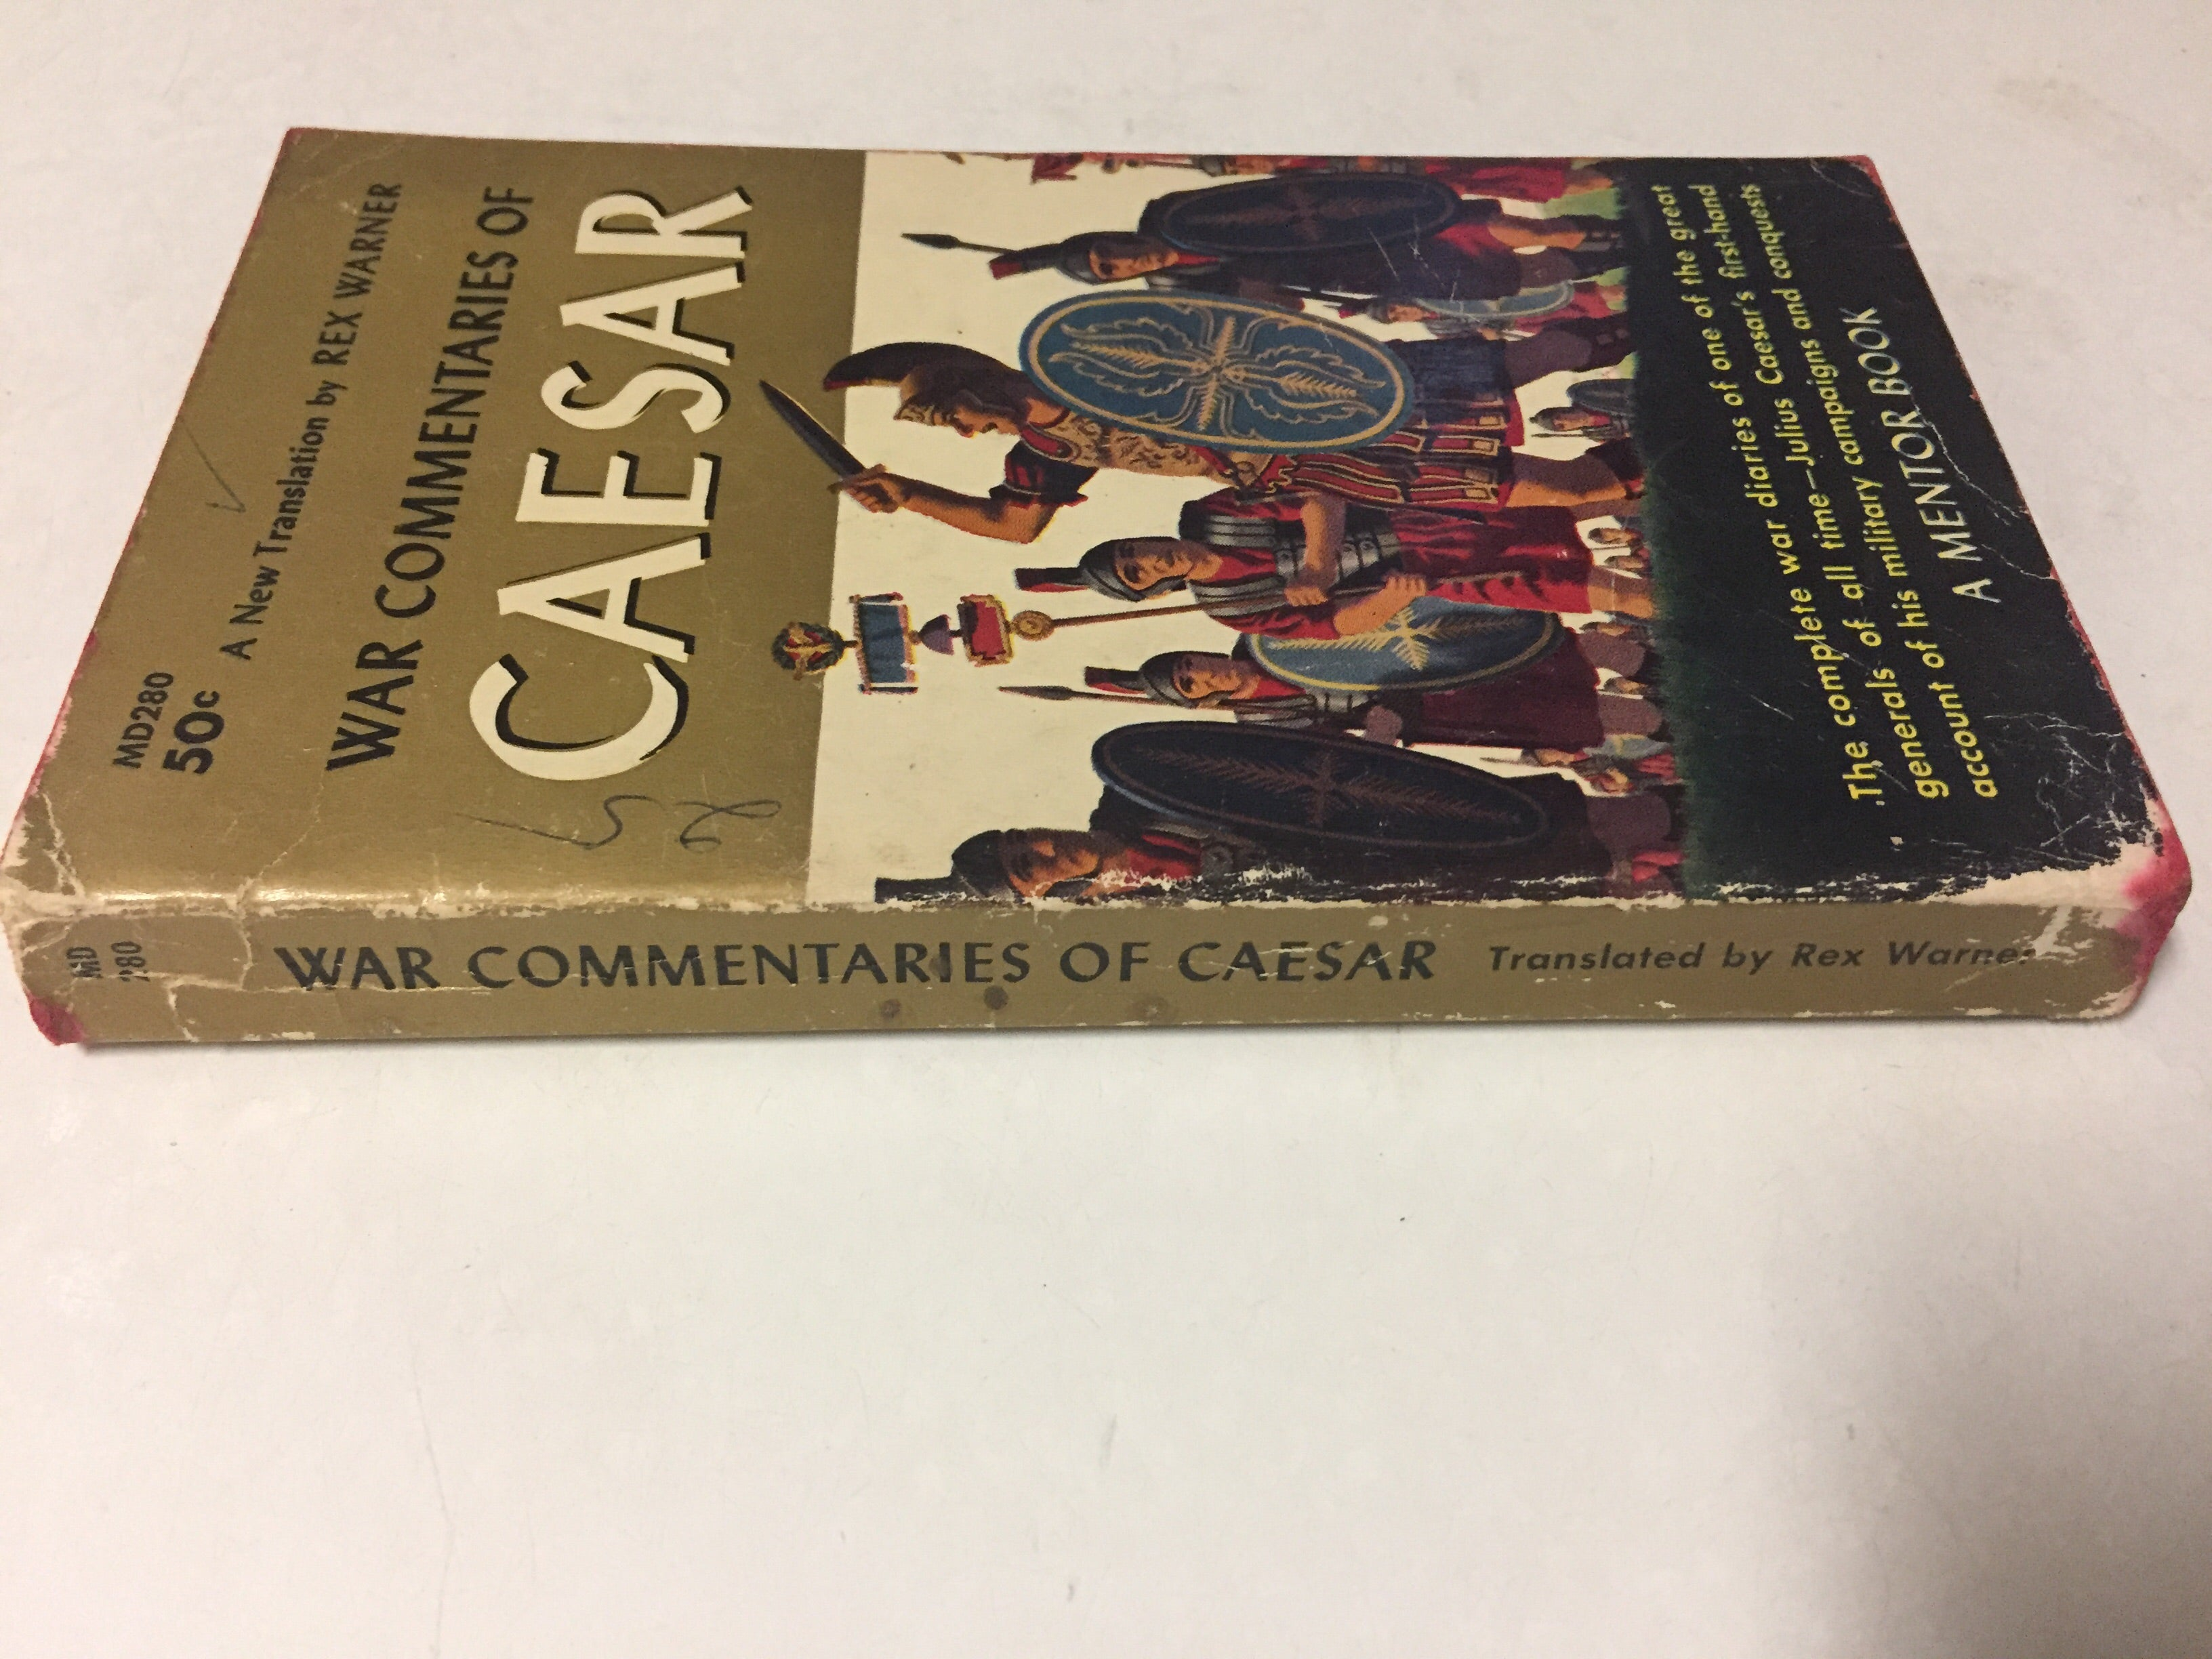 War Commentaries of Caesar - Slickcatbooks